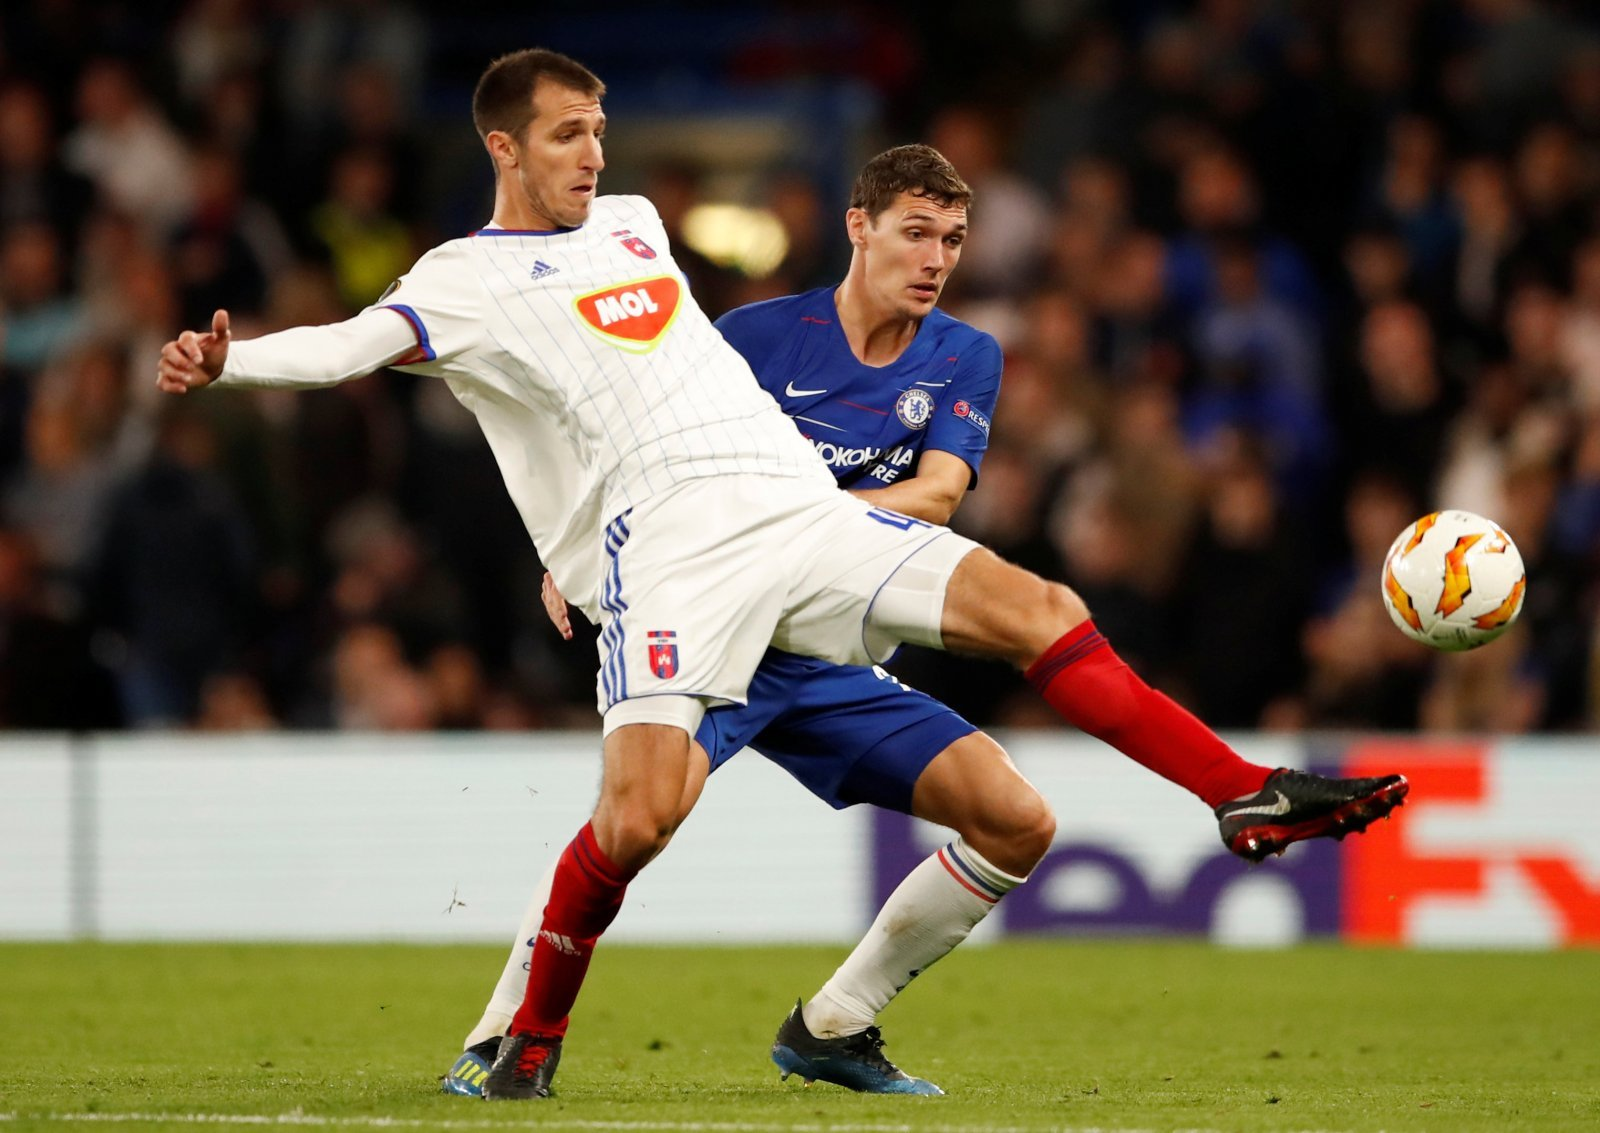 West Ham must look to persuade Christensen to the London Stadium